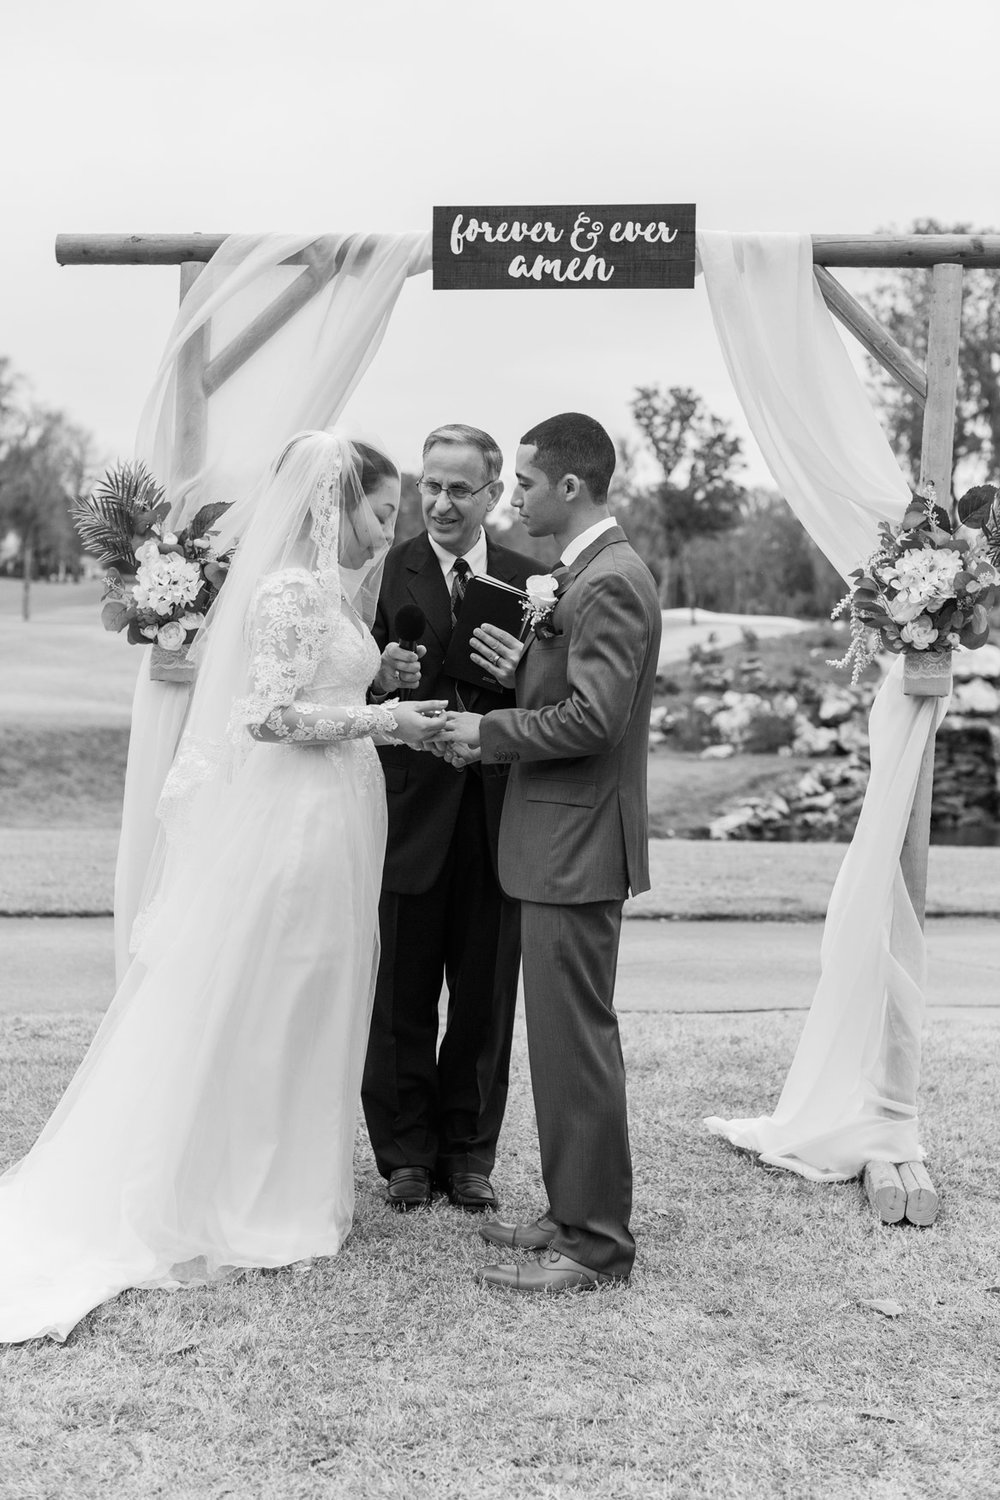 ©2018_BlueSleevePhotography_ Summer+Brian_Wedding-020318_00149.jpg